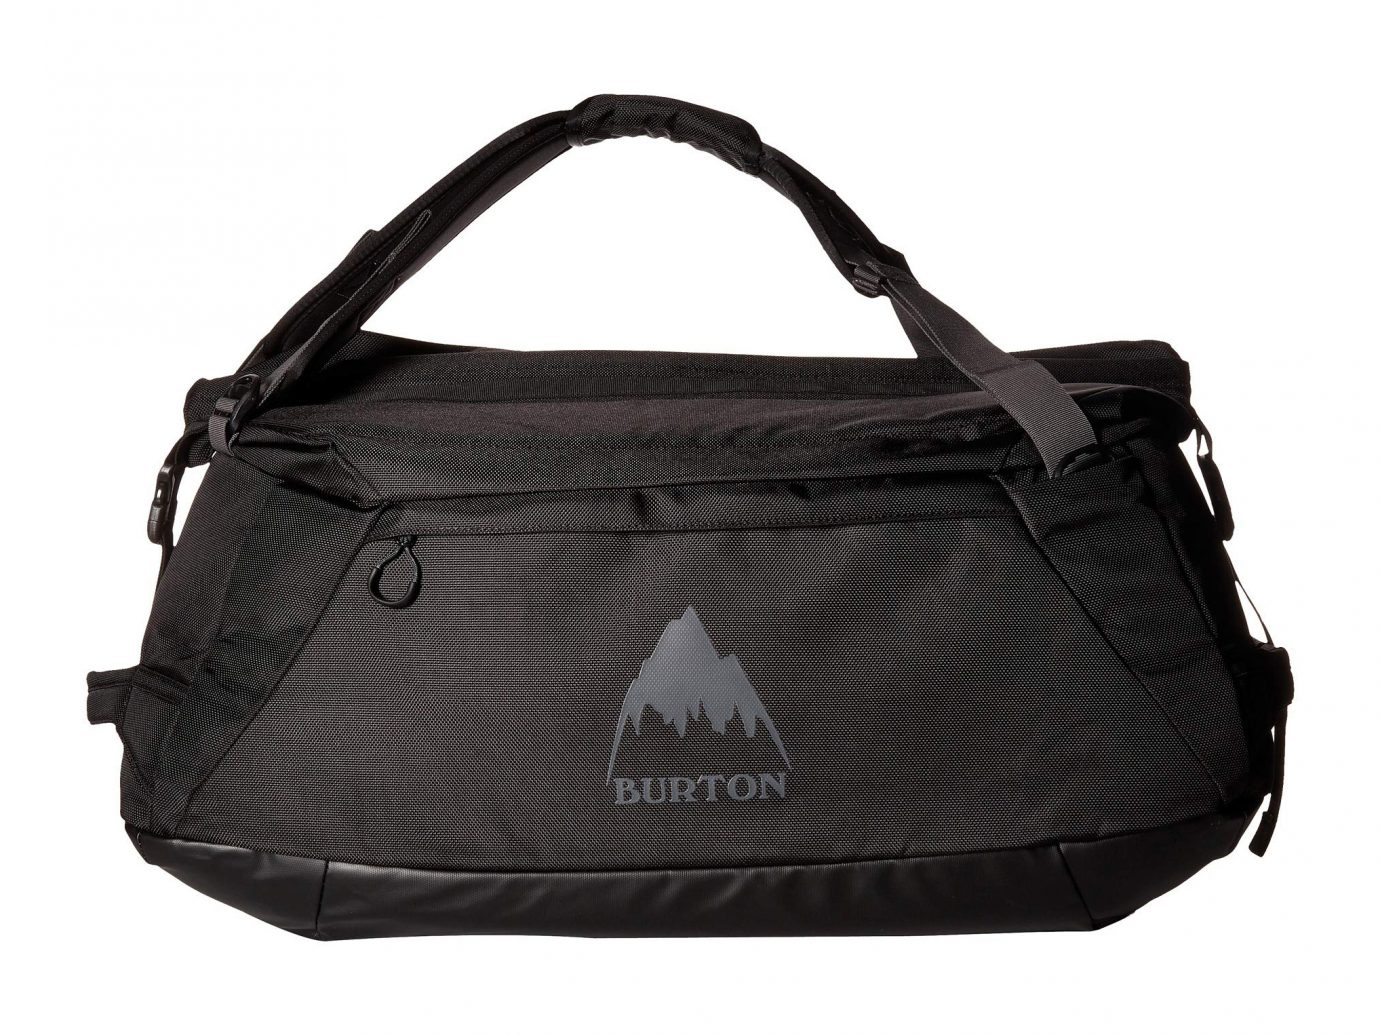 f6eef4feeb7a 14 Best Duffel Bags for Travel